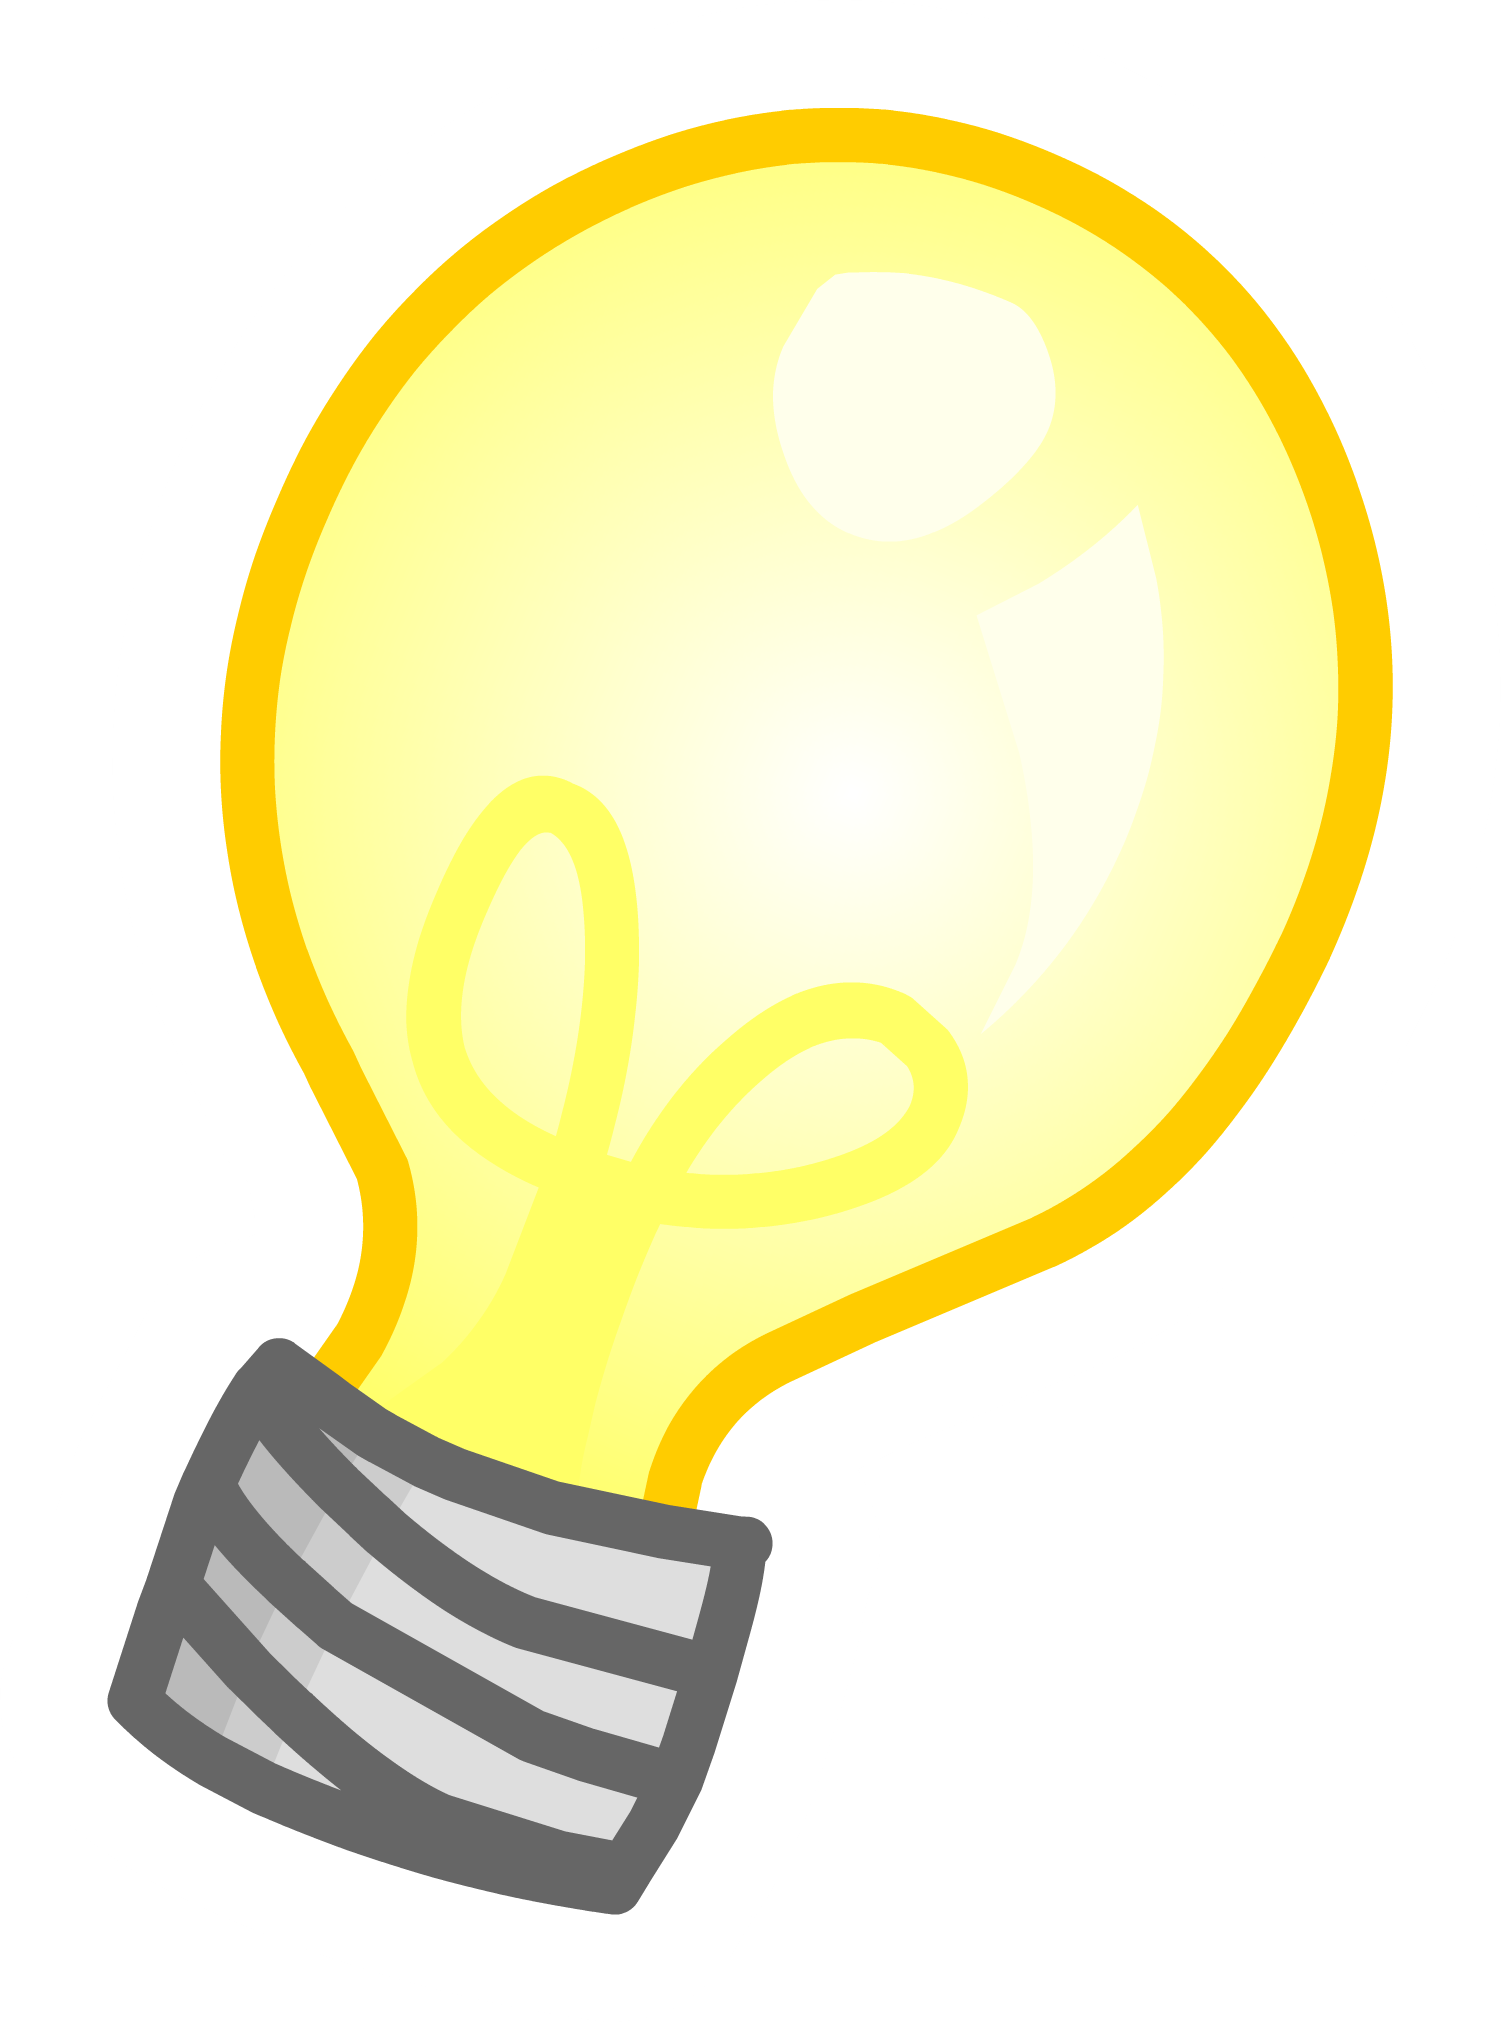 Transparent Lightbulb Background image #841